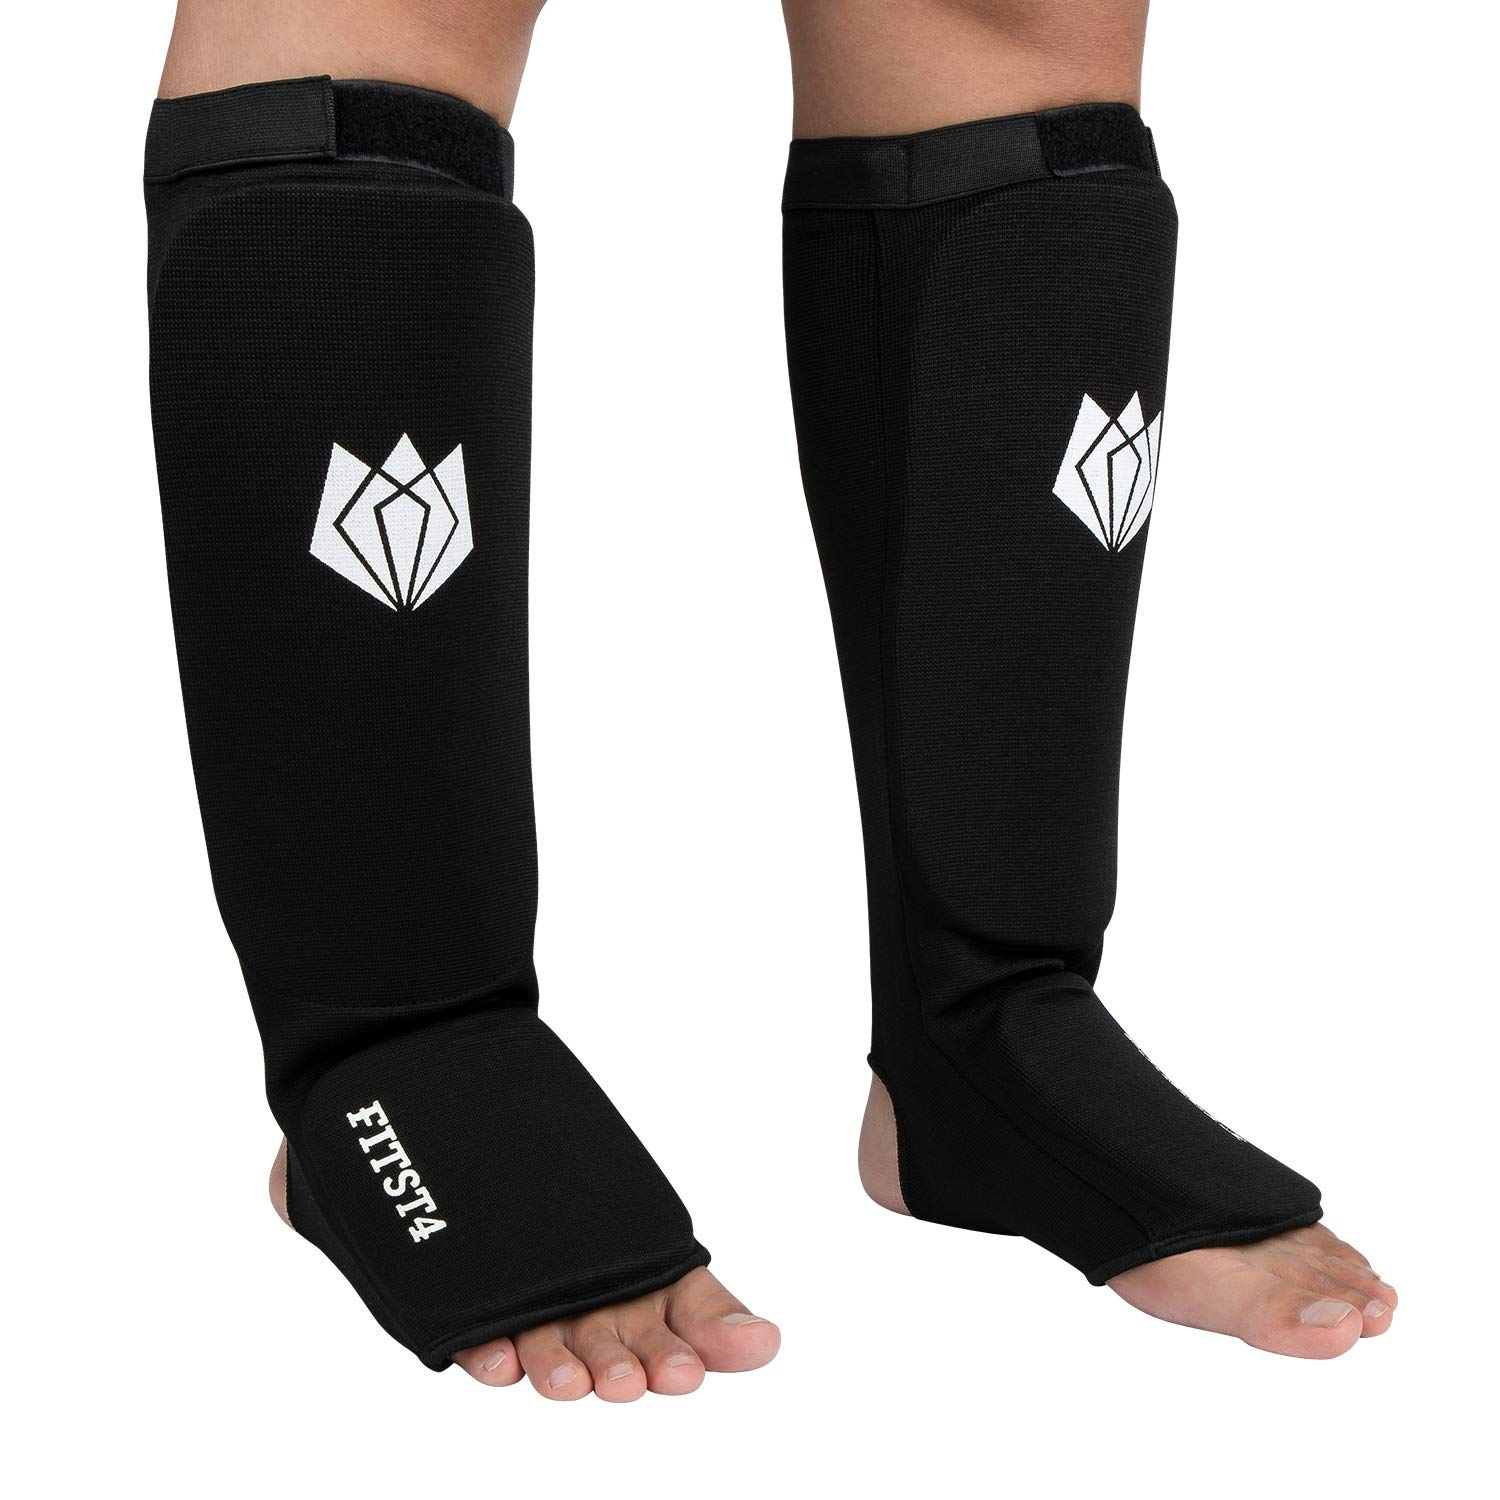 Twins Special Shin Guard /& instep Protection Sgs-1